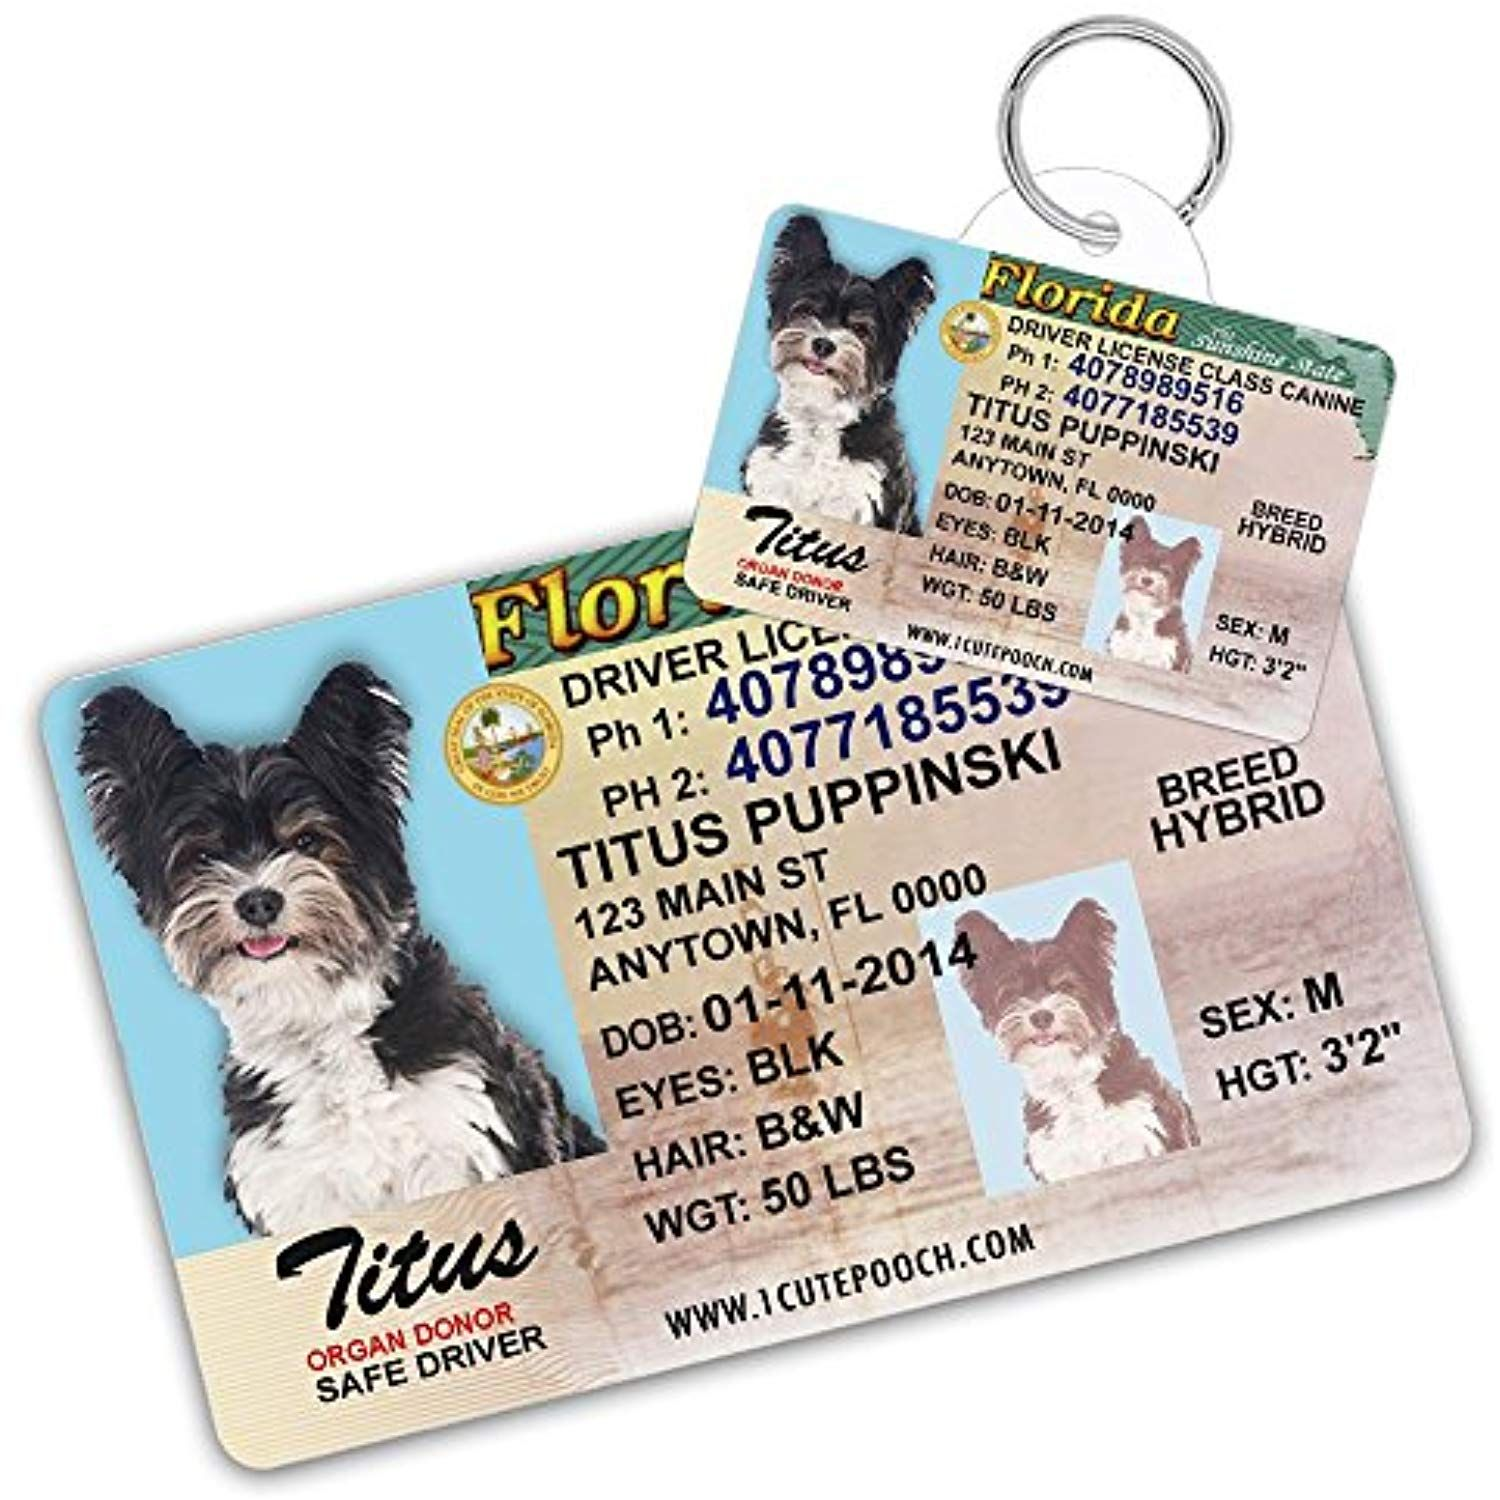 Florida Driver License Custom Dog Tag For Pets And Wallet Card